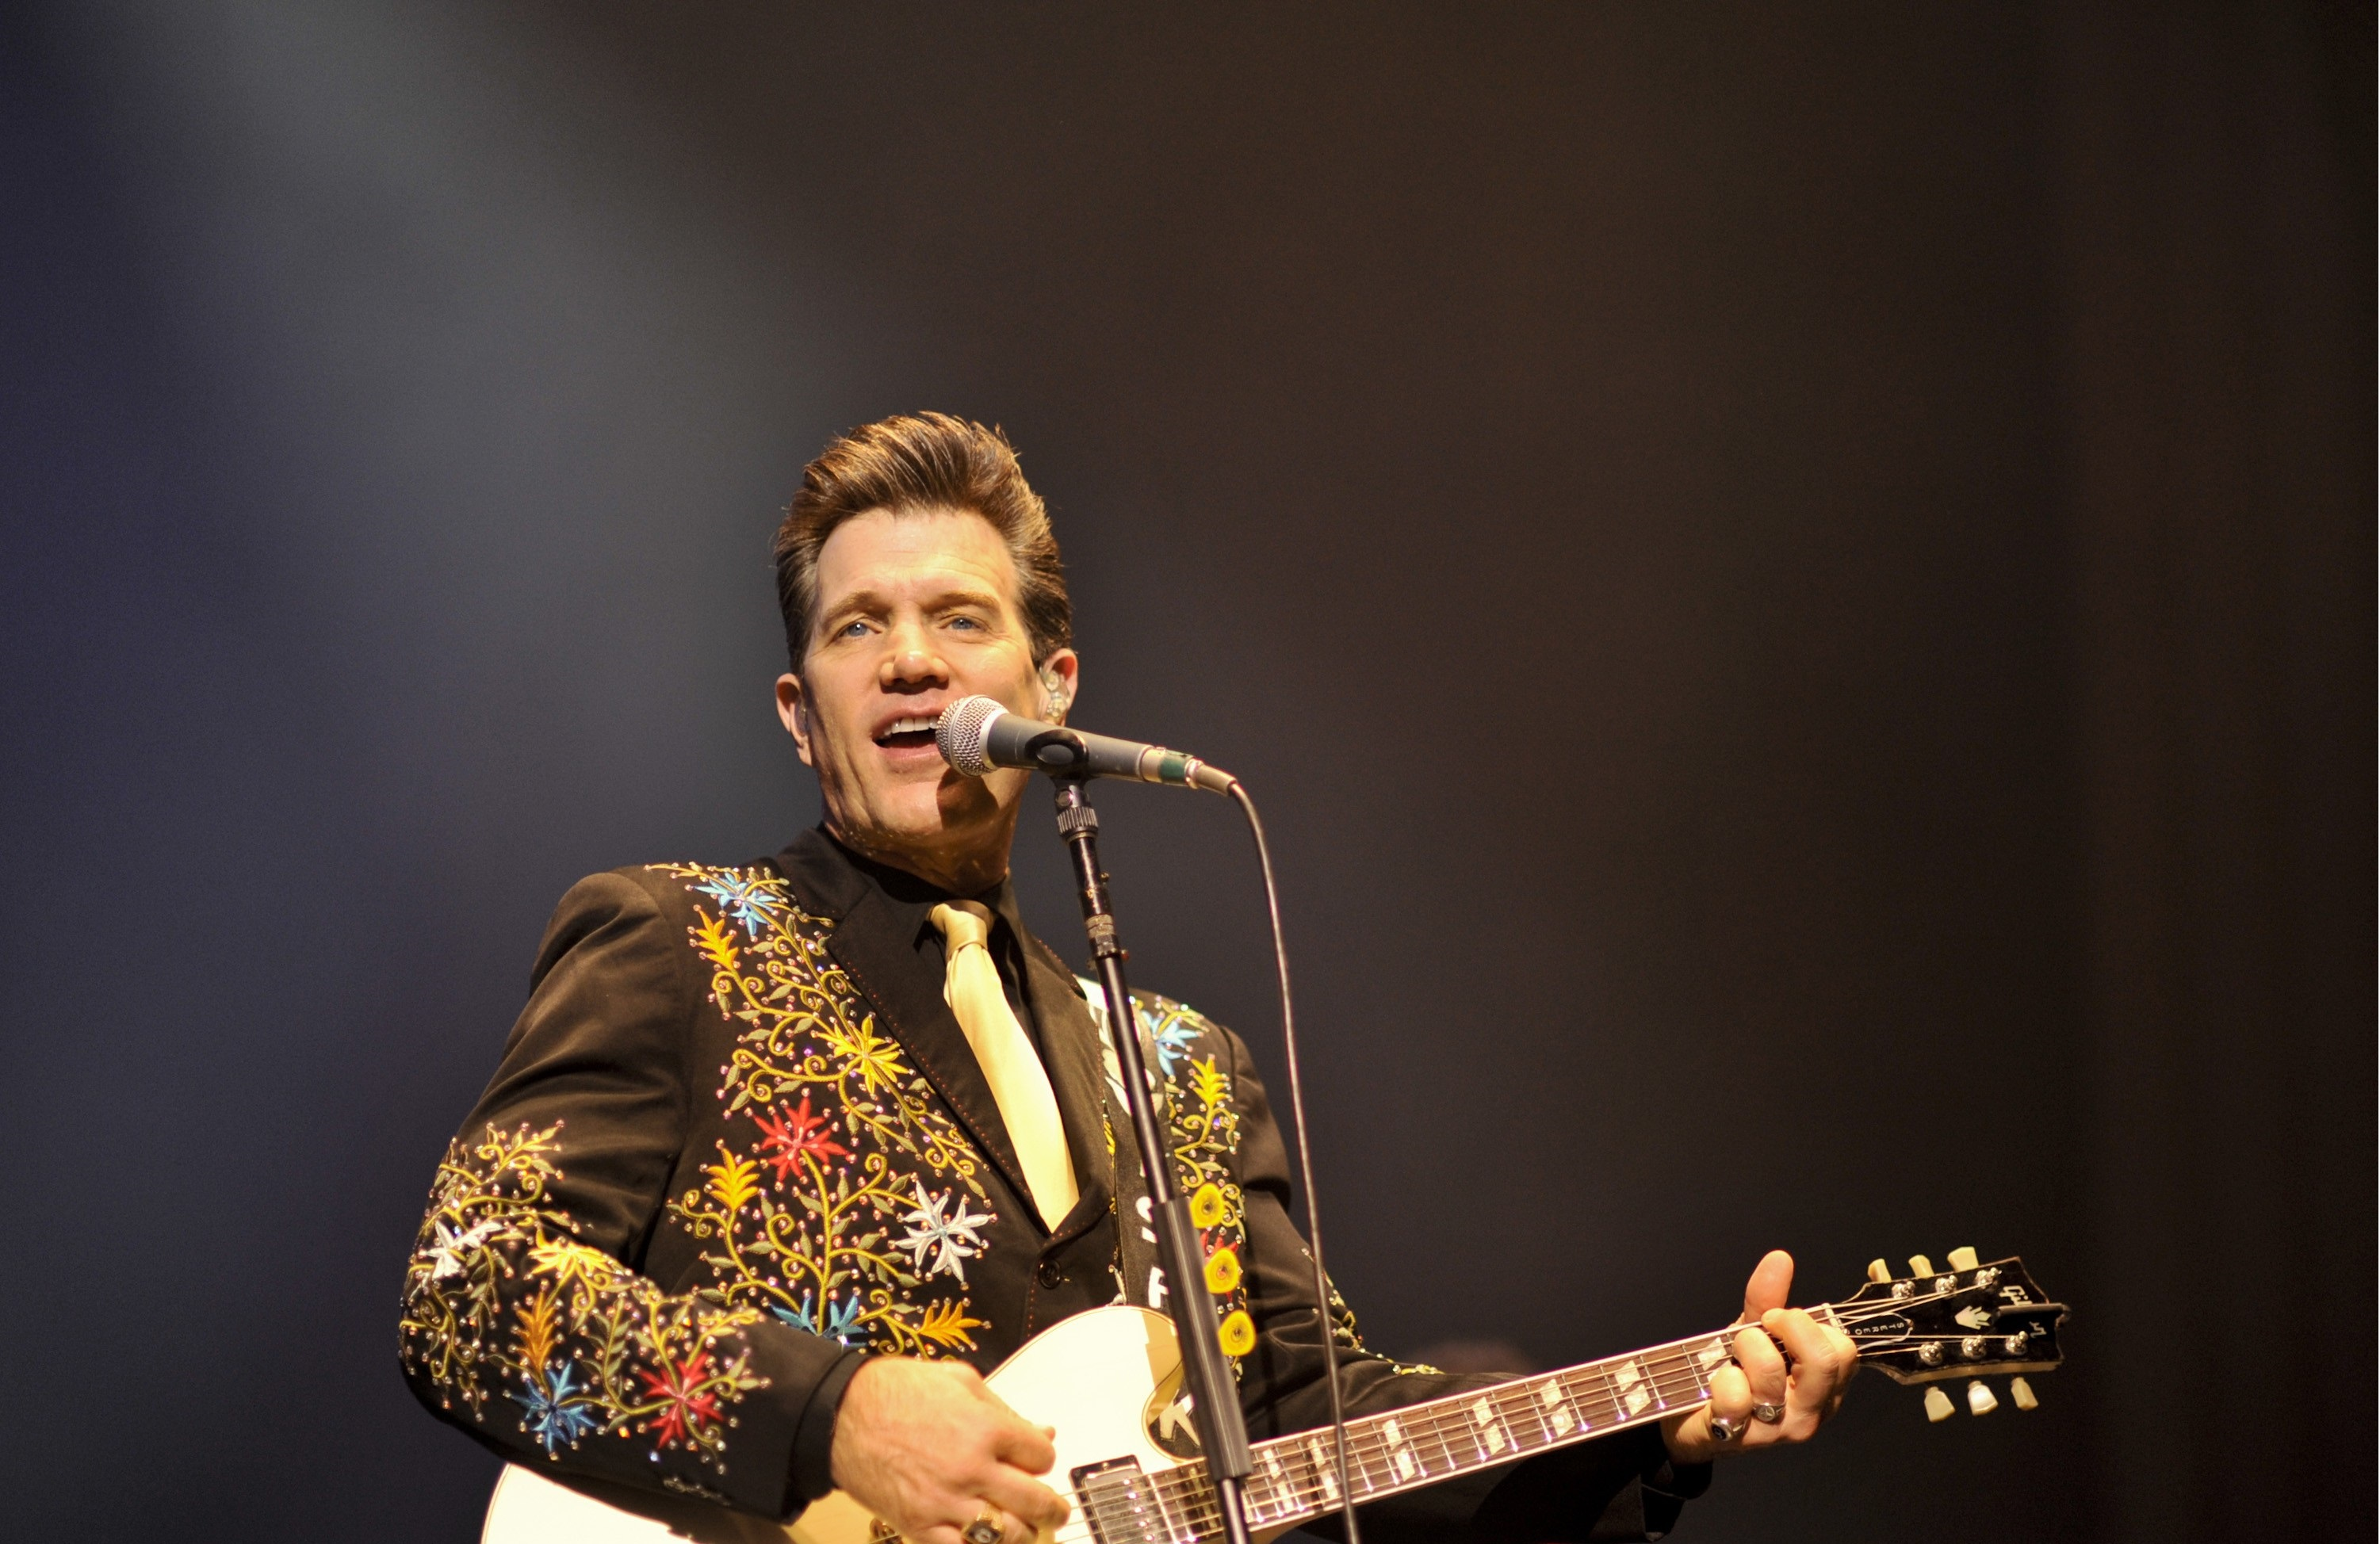 Chris Isaak High Quality Wallpapers